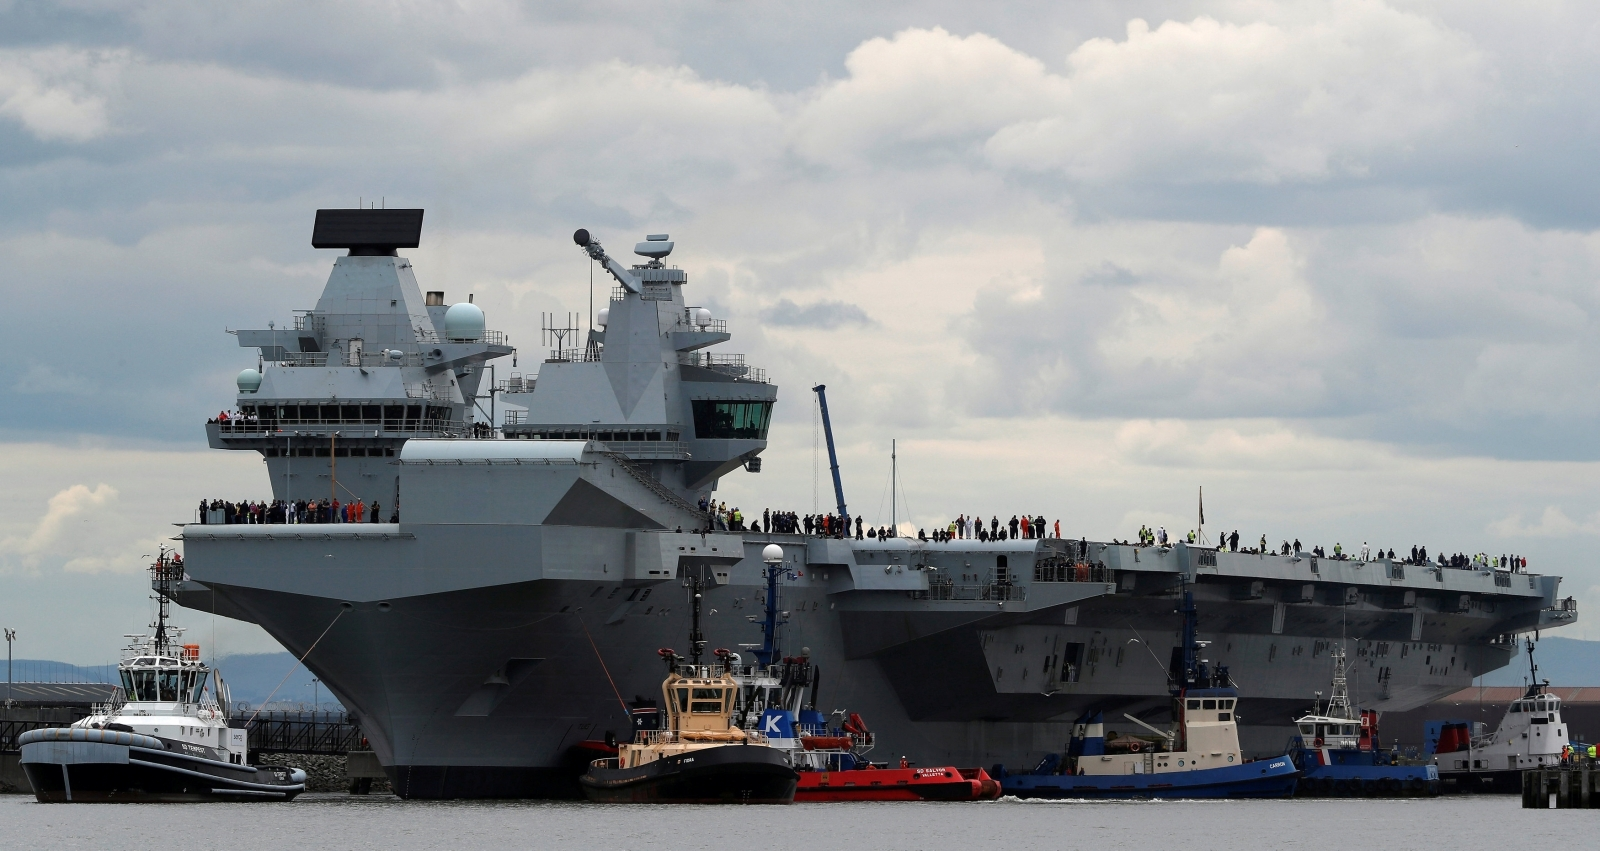 British aircraft carrier HMS Queen Elizabeth